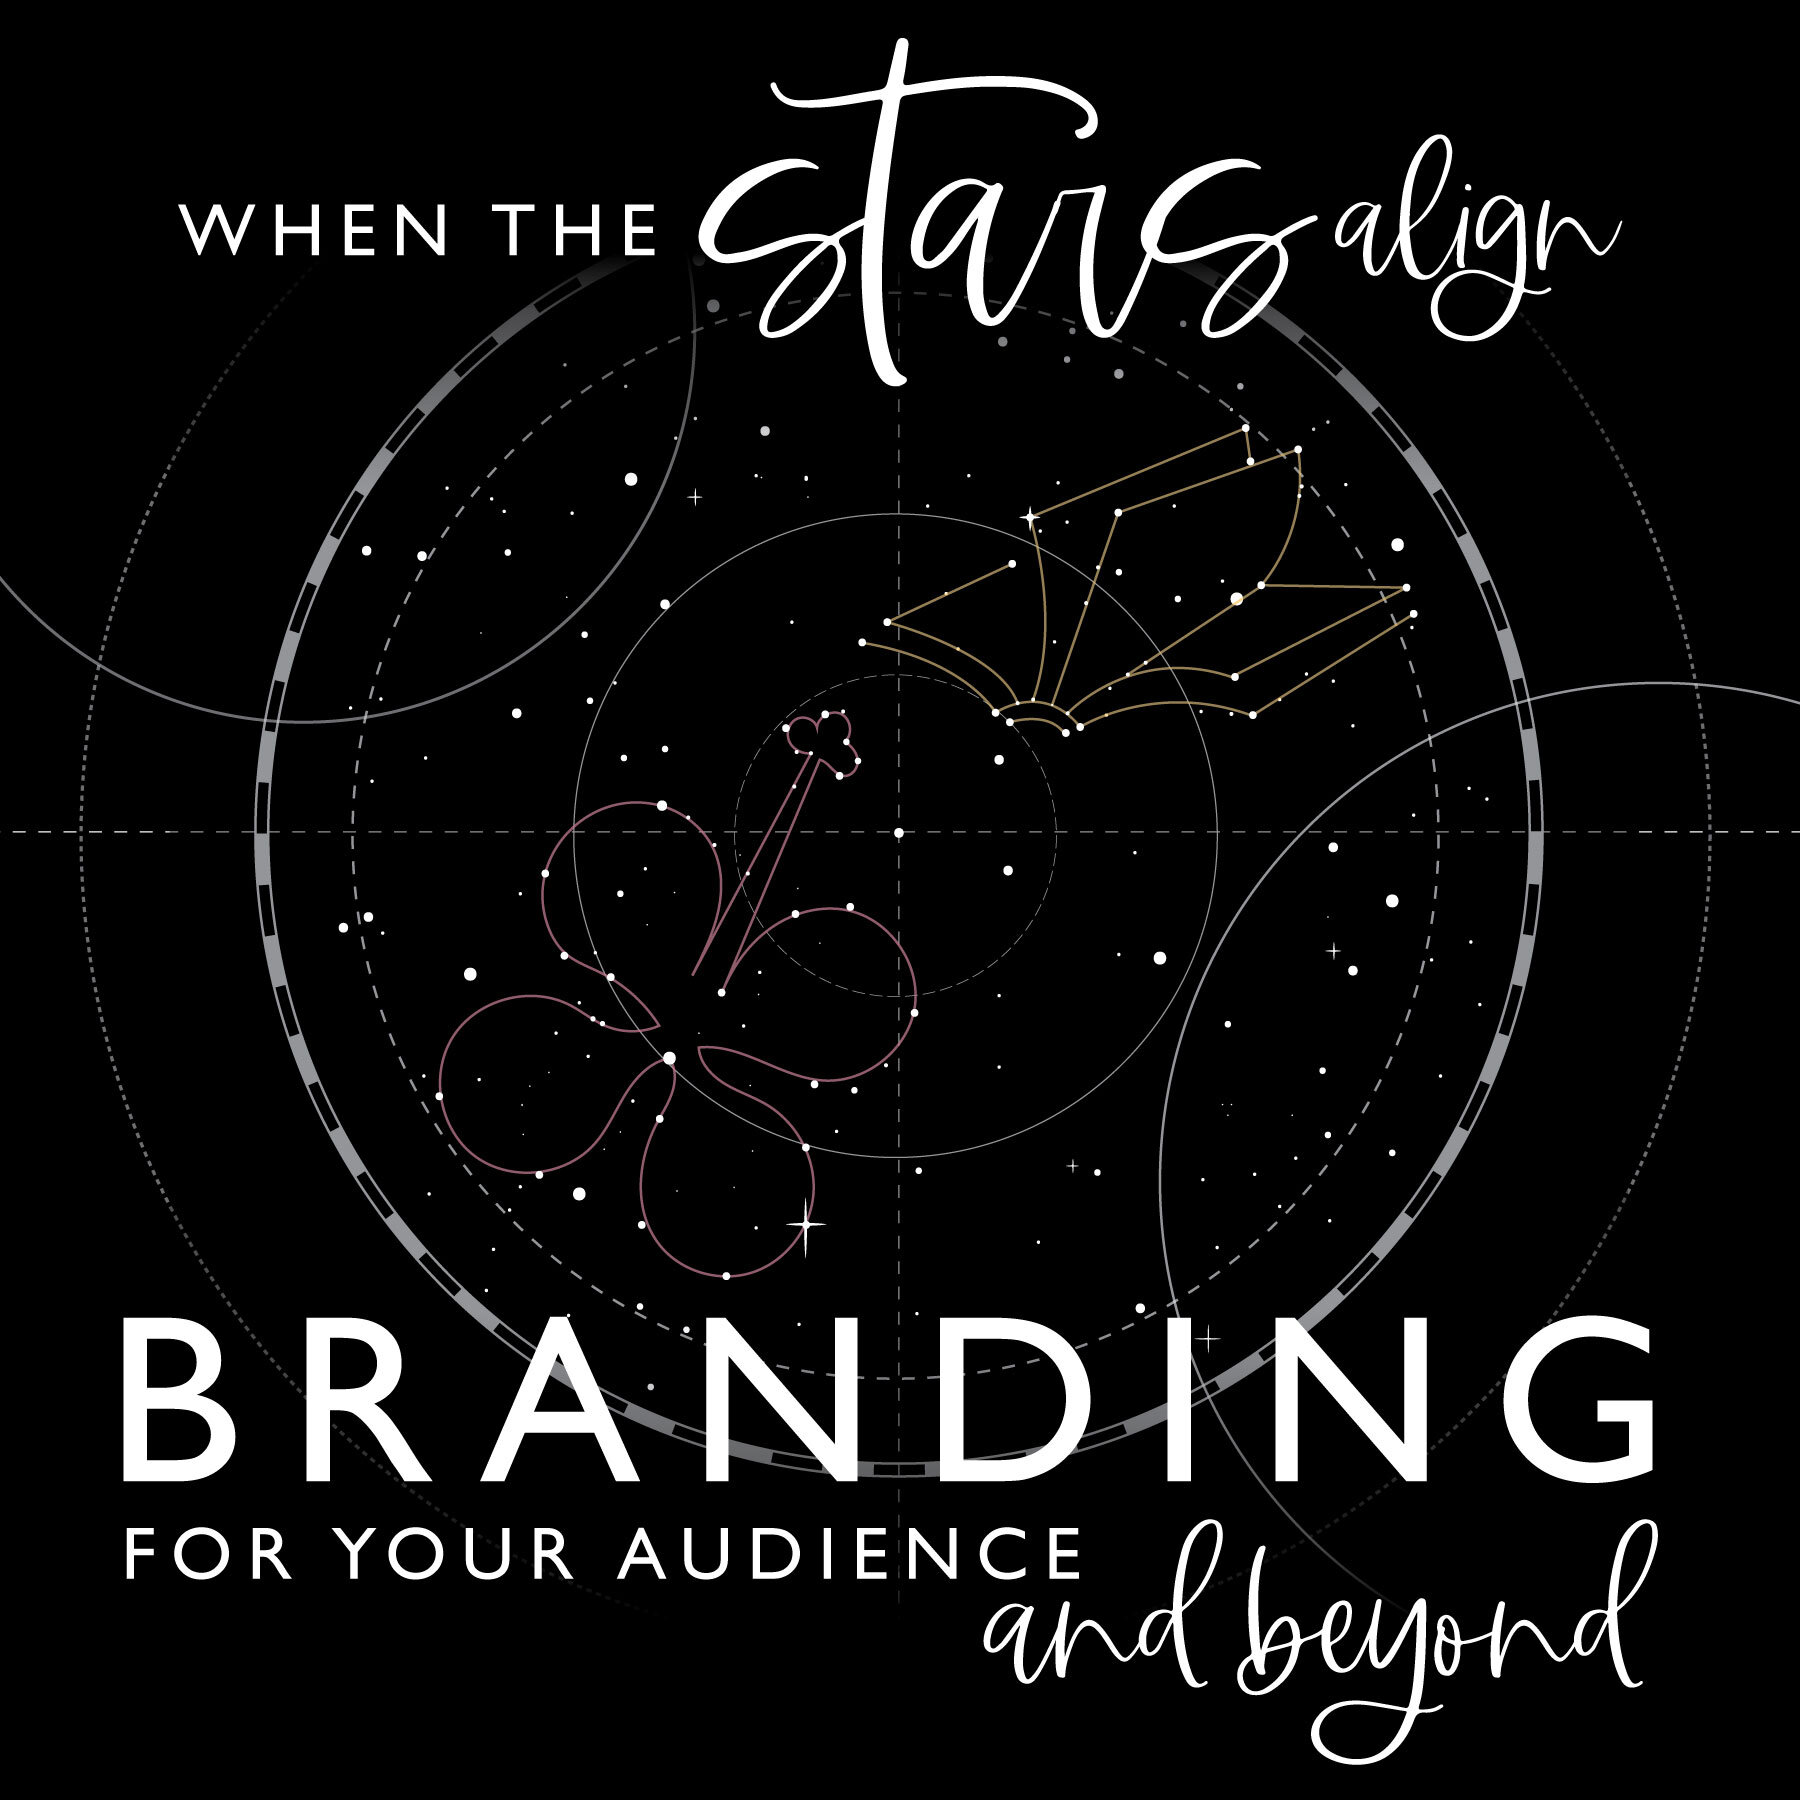 We're all made of stardust… and branding.